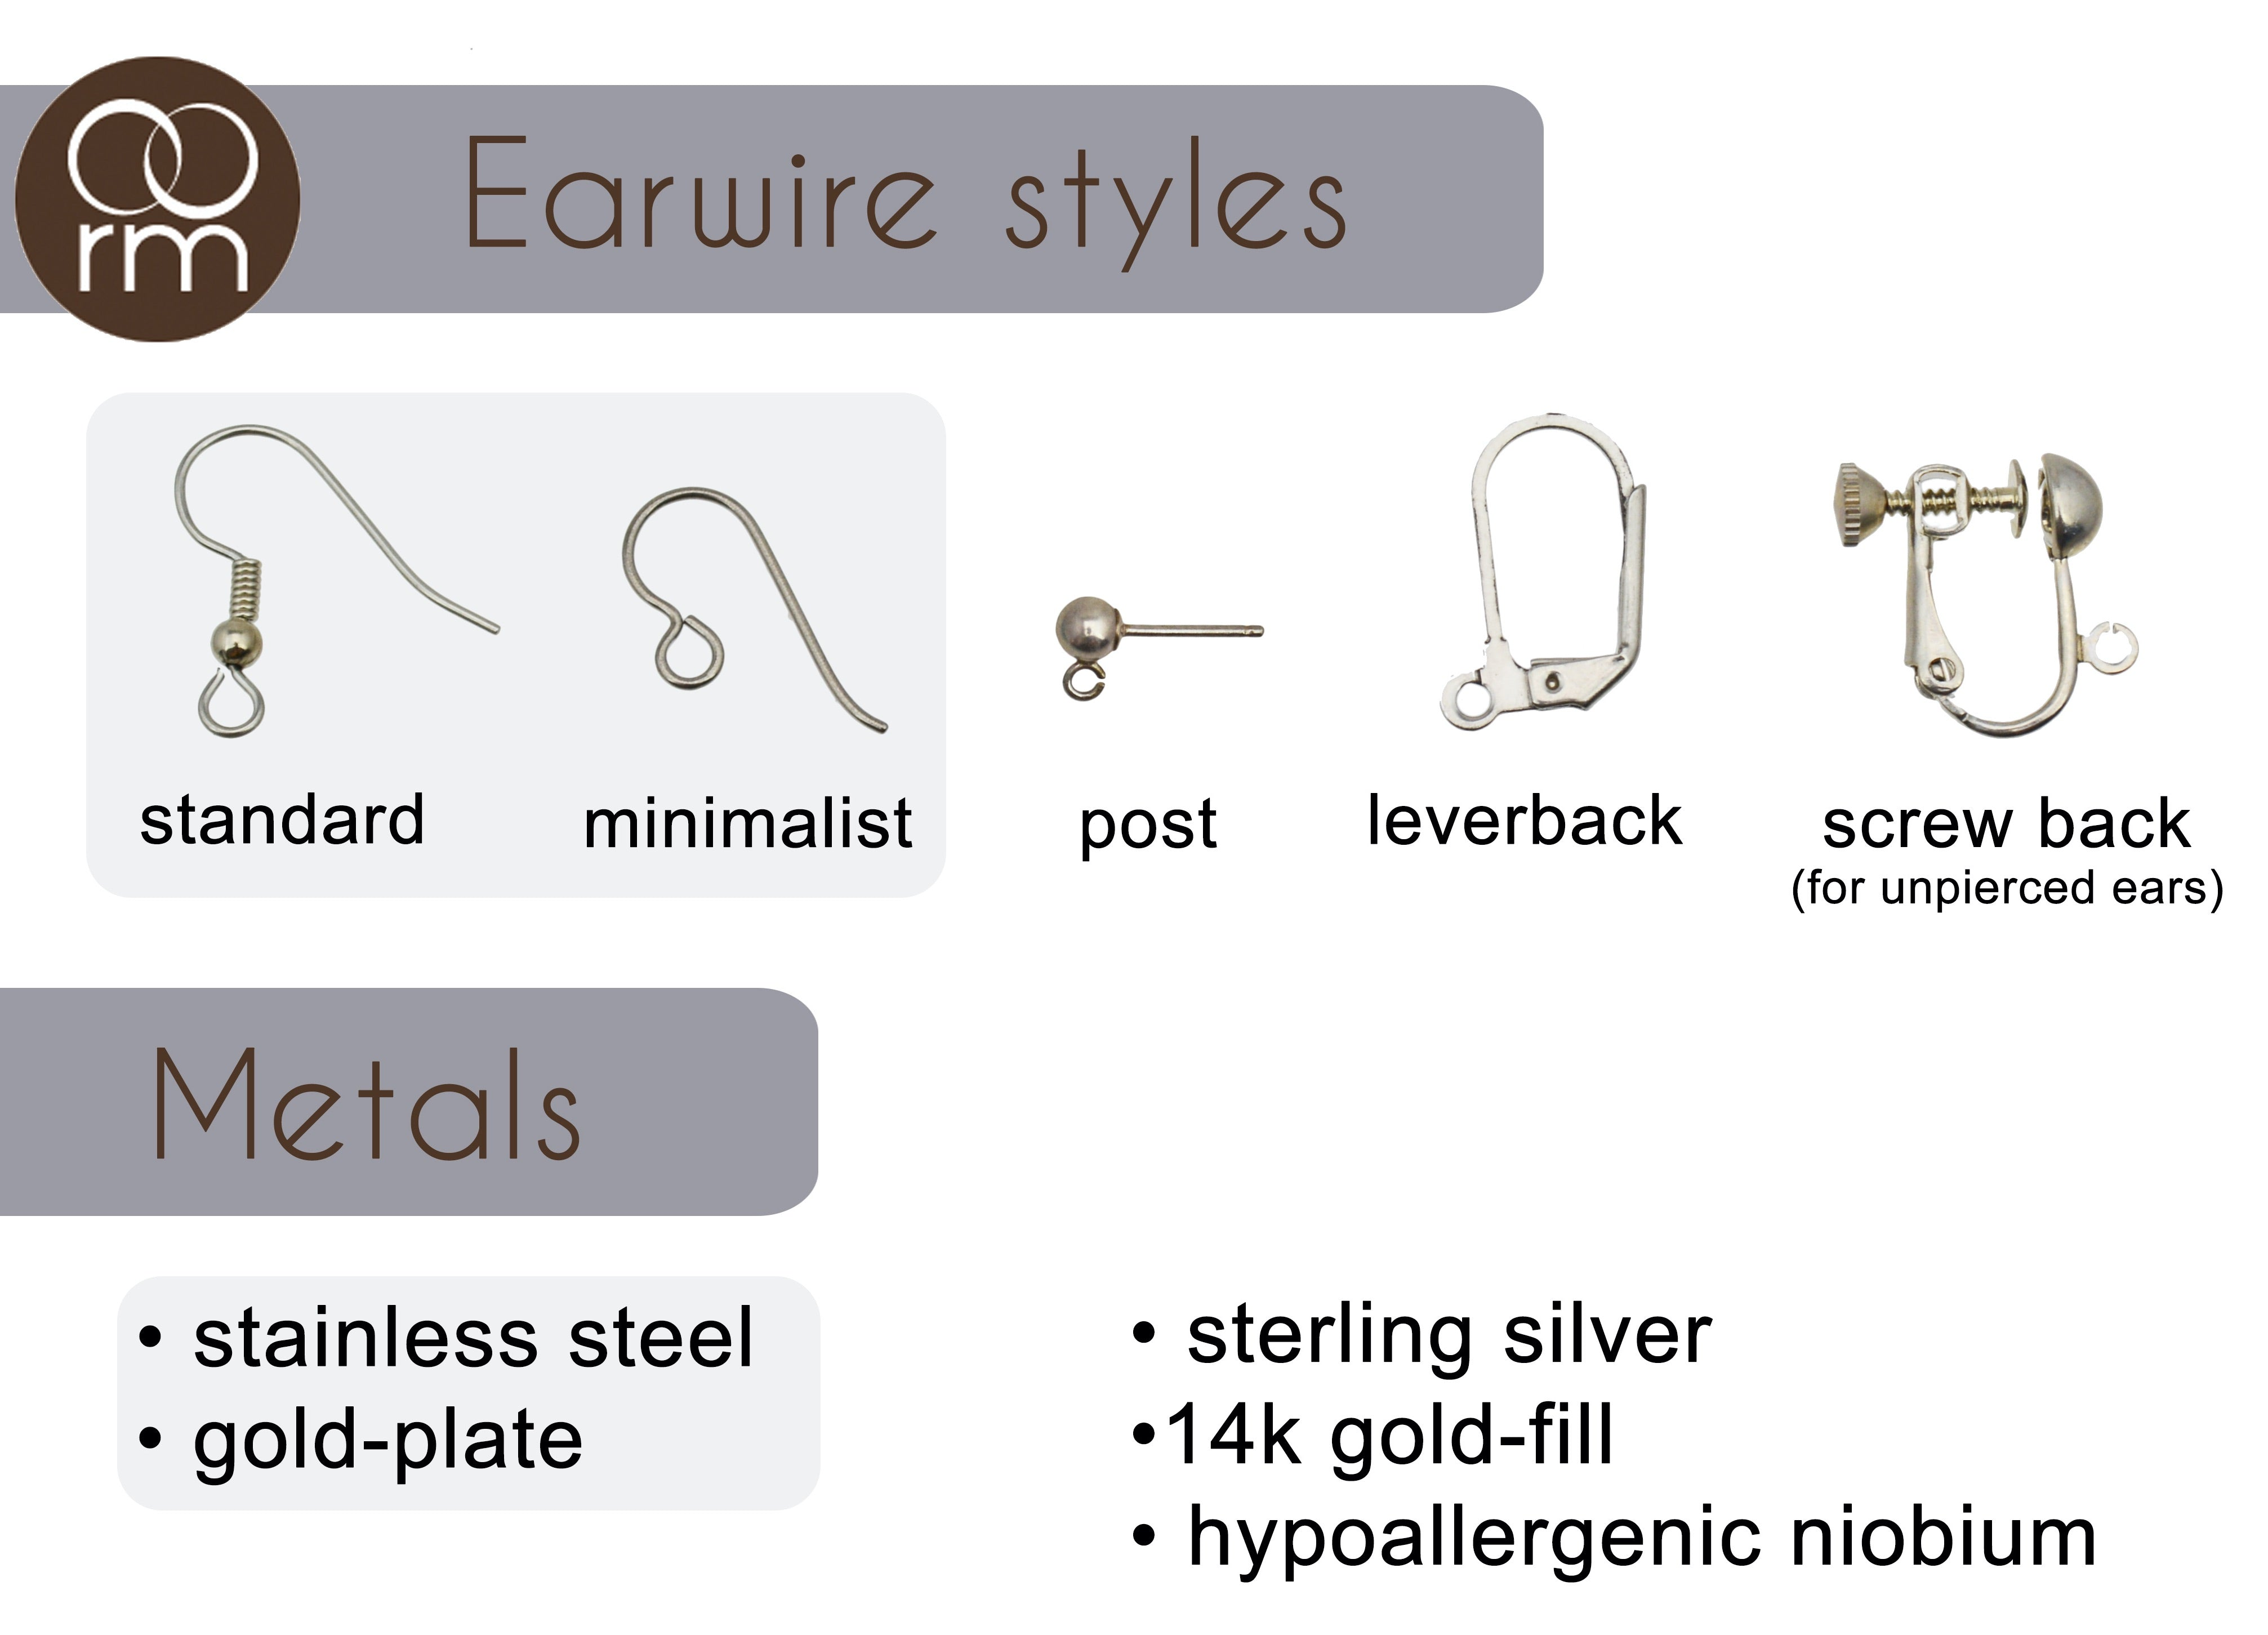 earwire options include standard (with ball and coil), minimalist, post with ball, leverback and screwback. Materials are stainless steel and gold-plate, or upgrade to sterling silver, gold-fill or hypoallergenic niobium